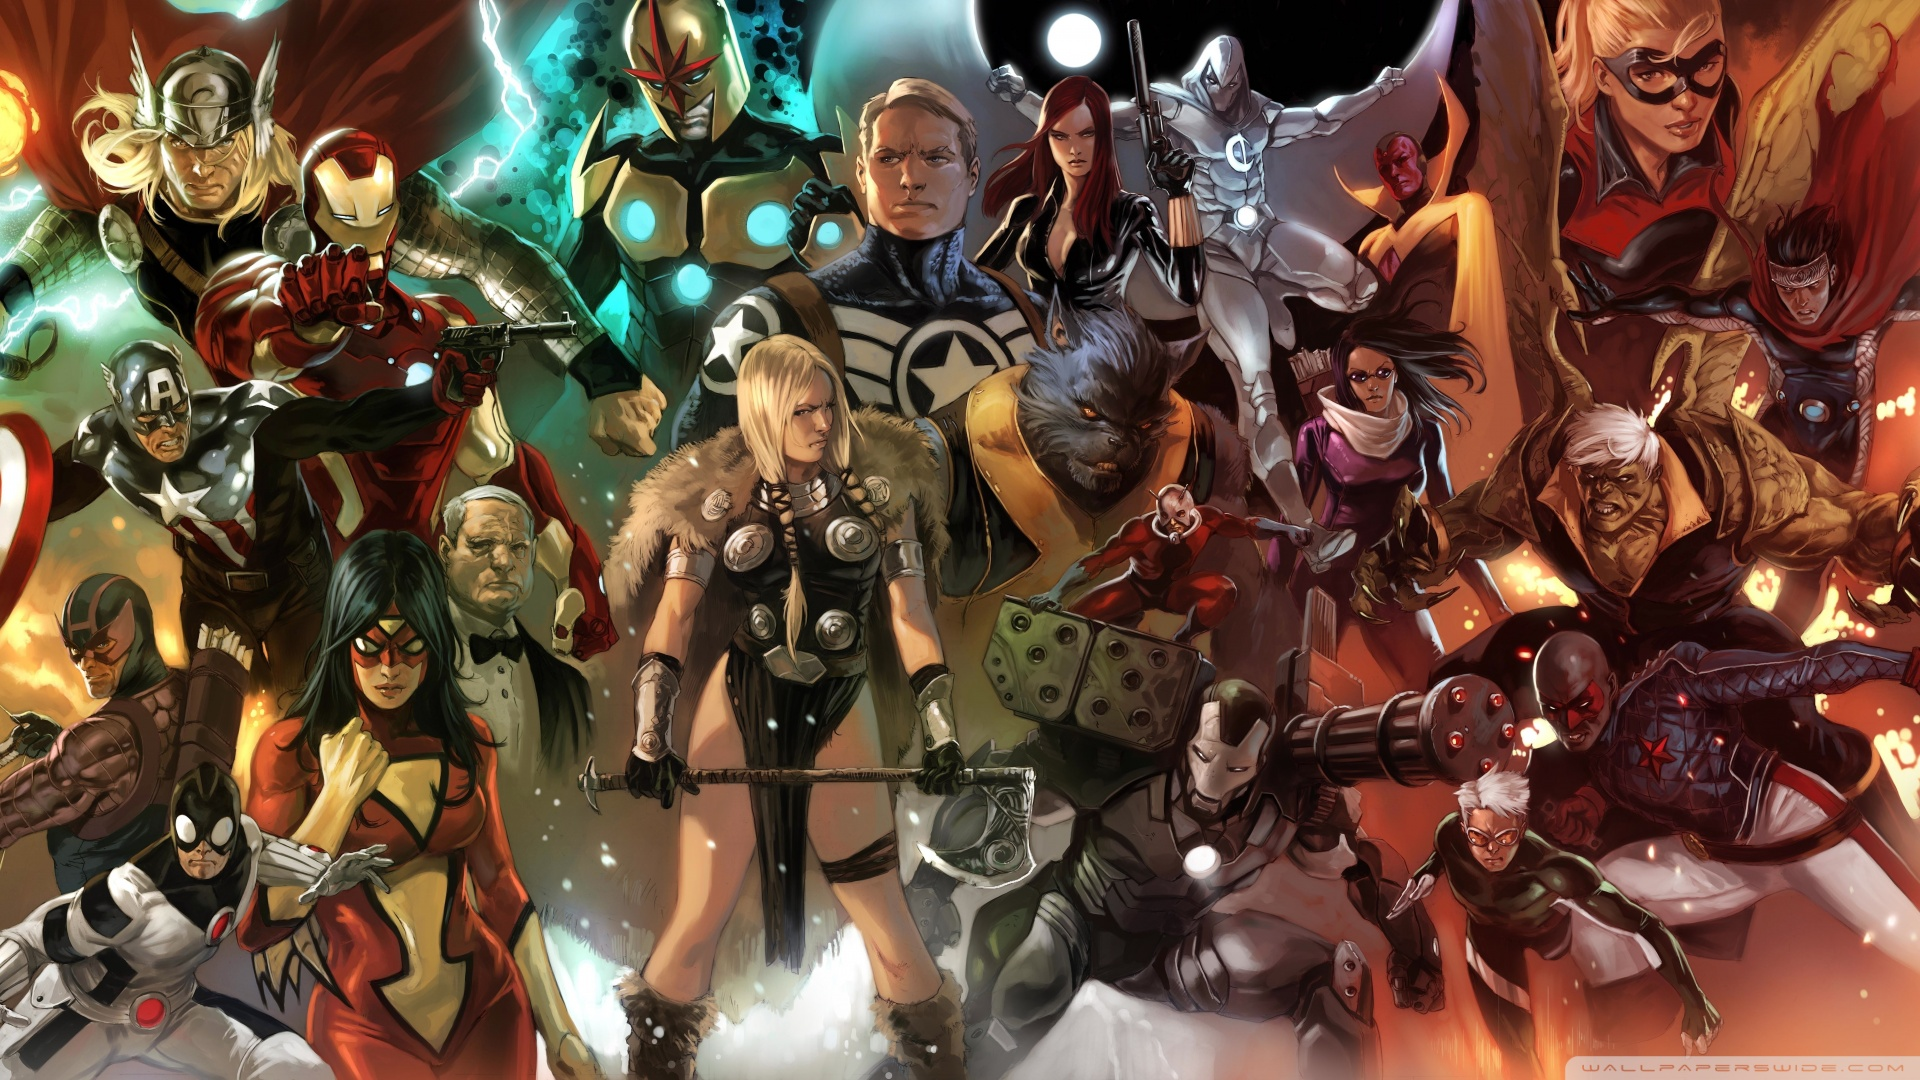 Top Marvel Universe Wallpaper 1920x1080 Images for Pinterest 1920x1080